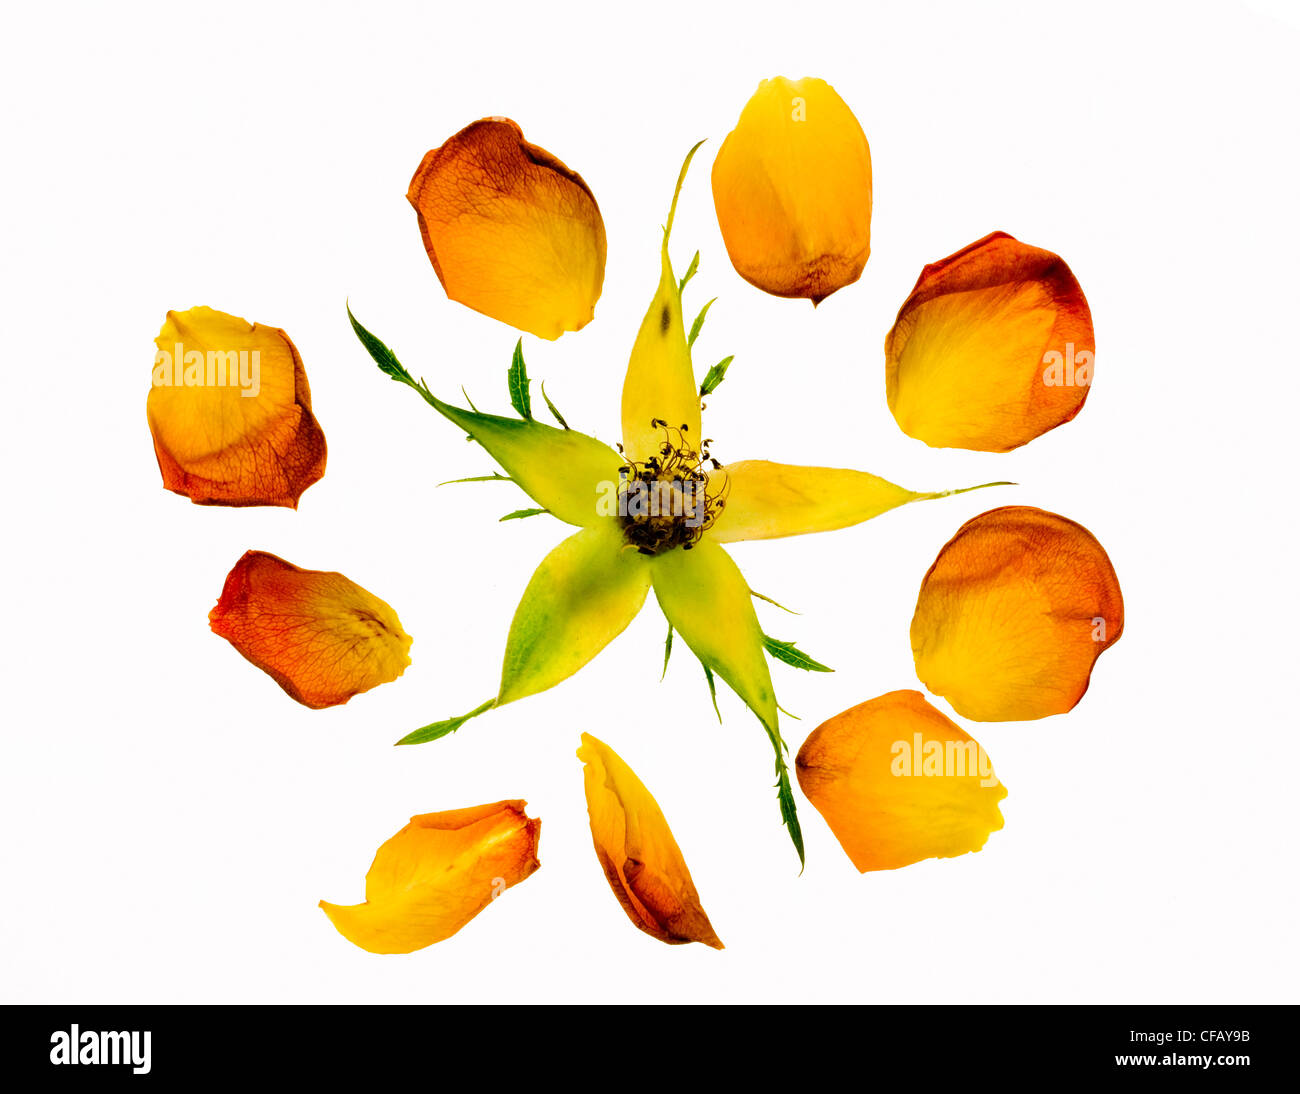 Broken rose with spread petals against white background - Stock Image